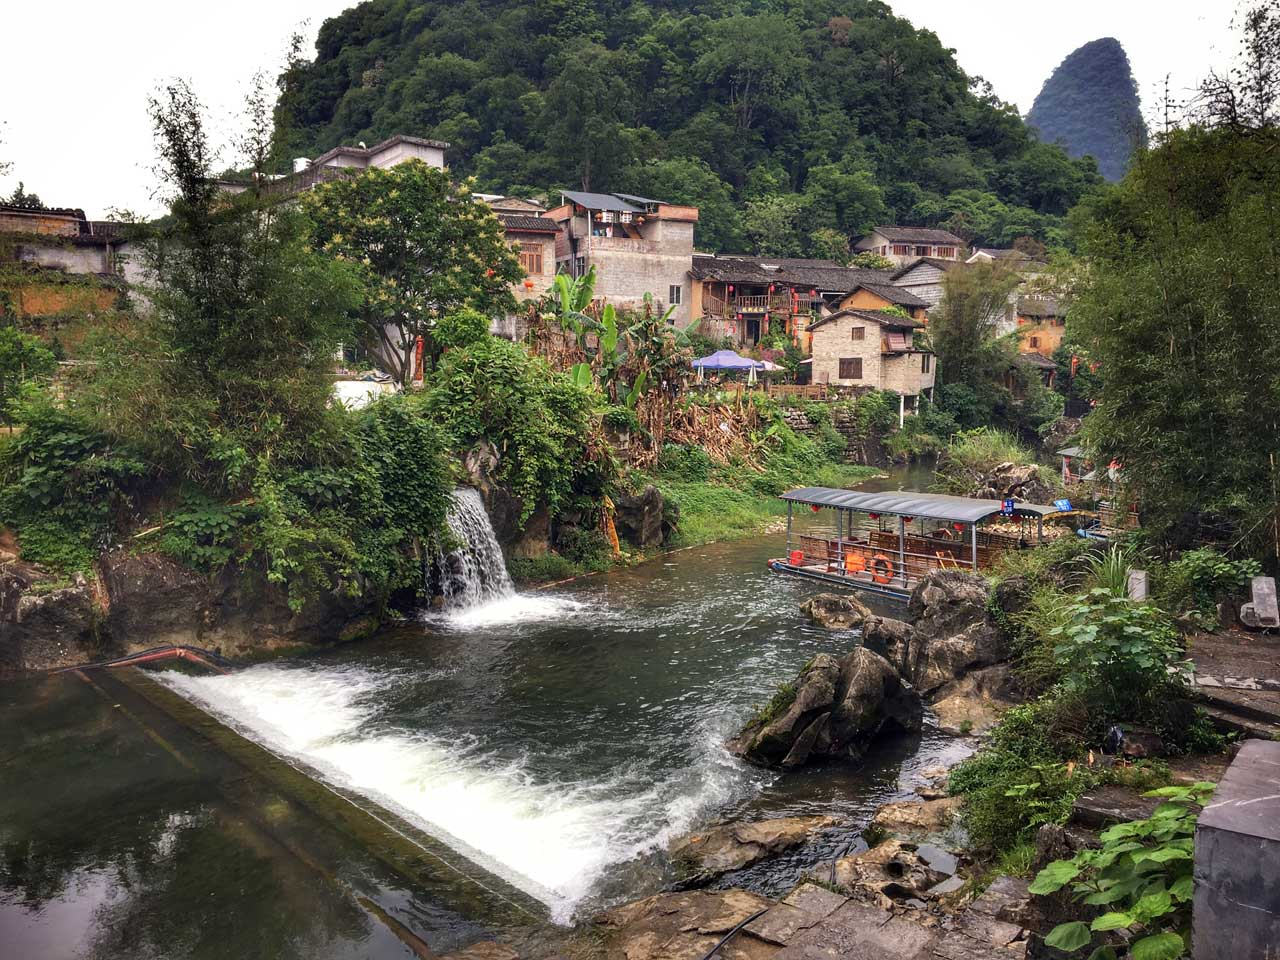 Lake with waterfall in Huangyao Village, China | Image © ExpatAlli.com